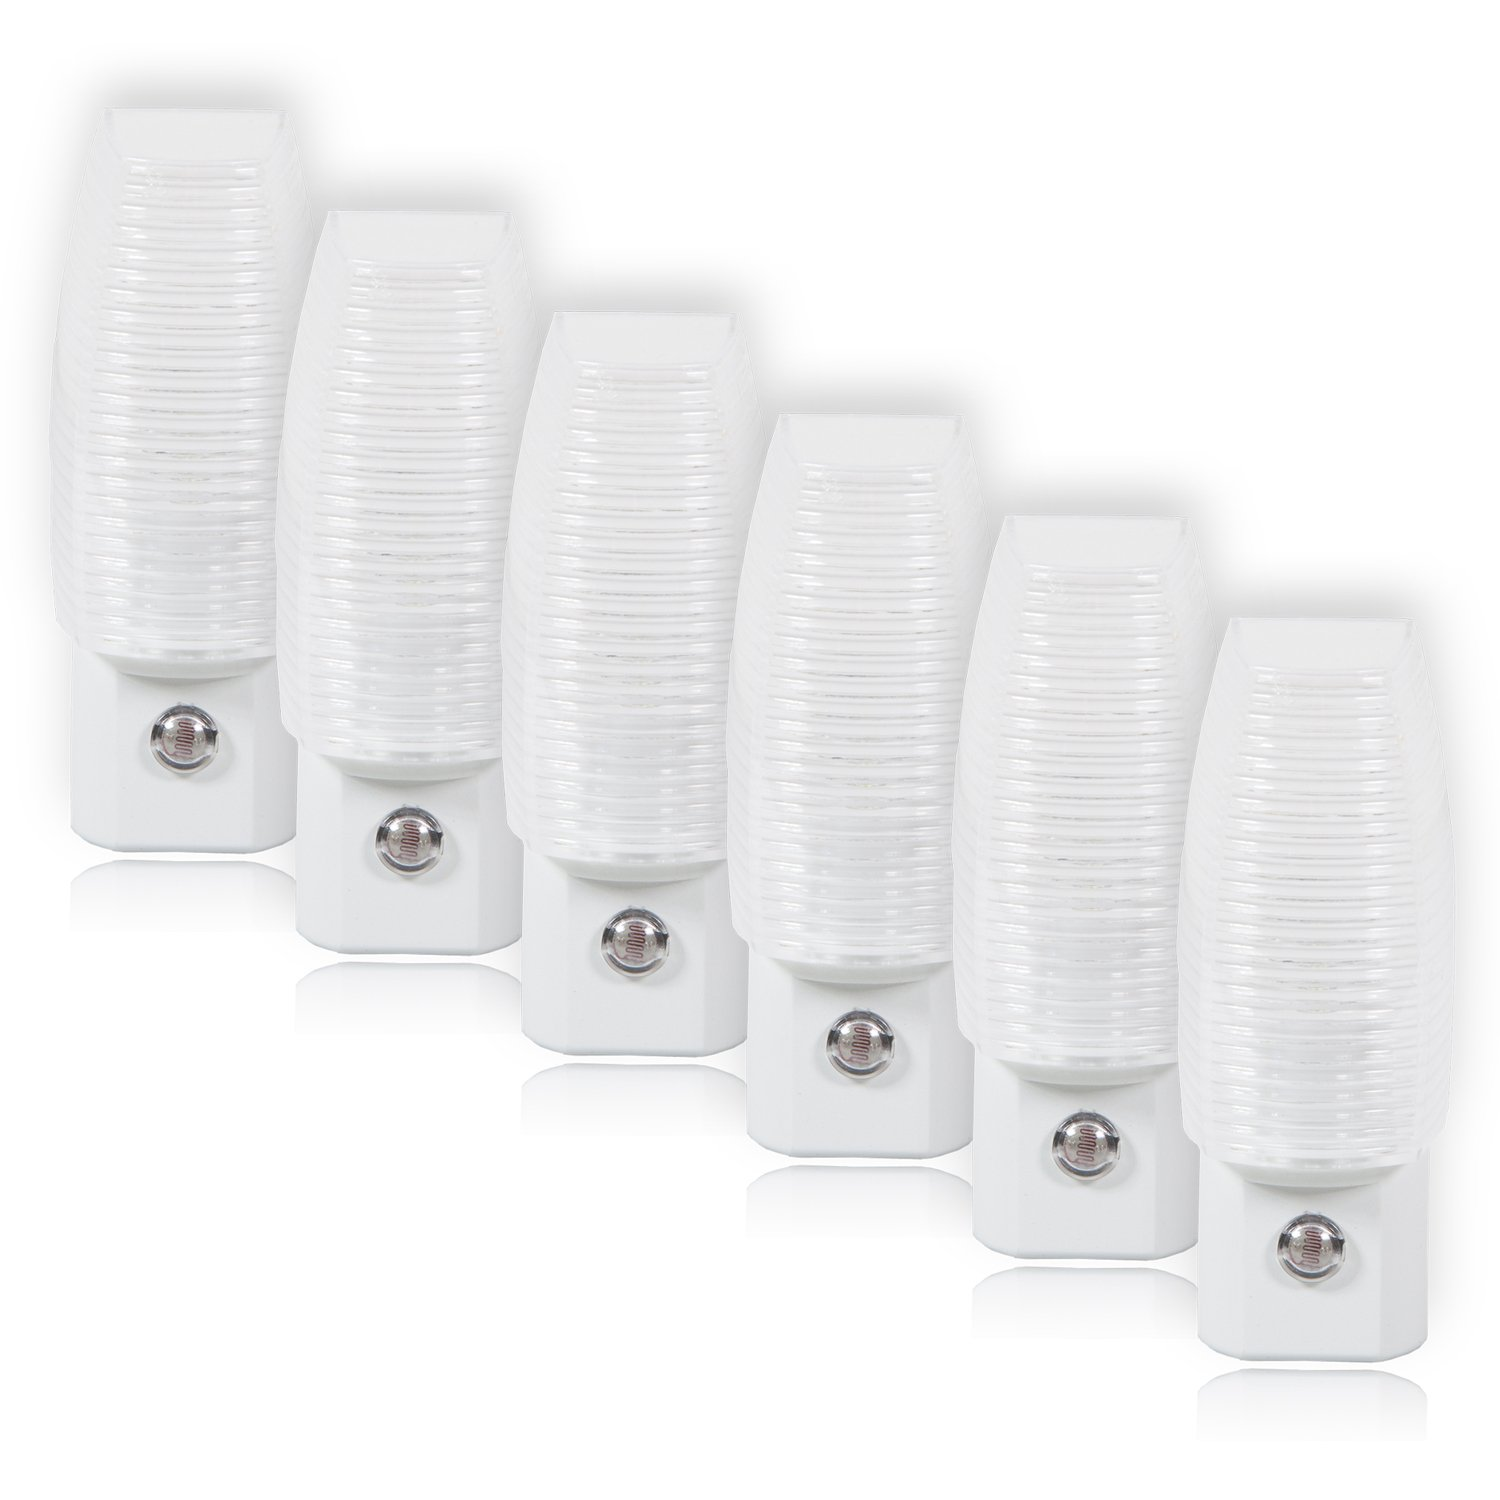 Maxxima MLN-16 LED Plug In Night Light With Auto Dusk to Dawn Sensor, 5 Lumens (6 Pack)